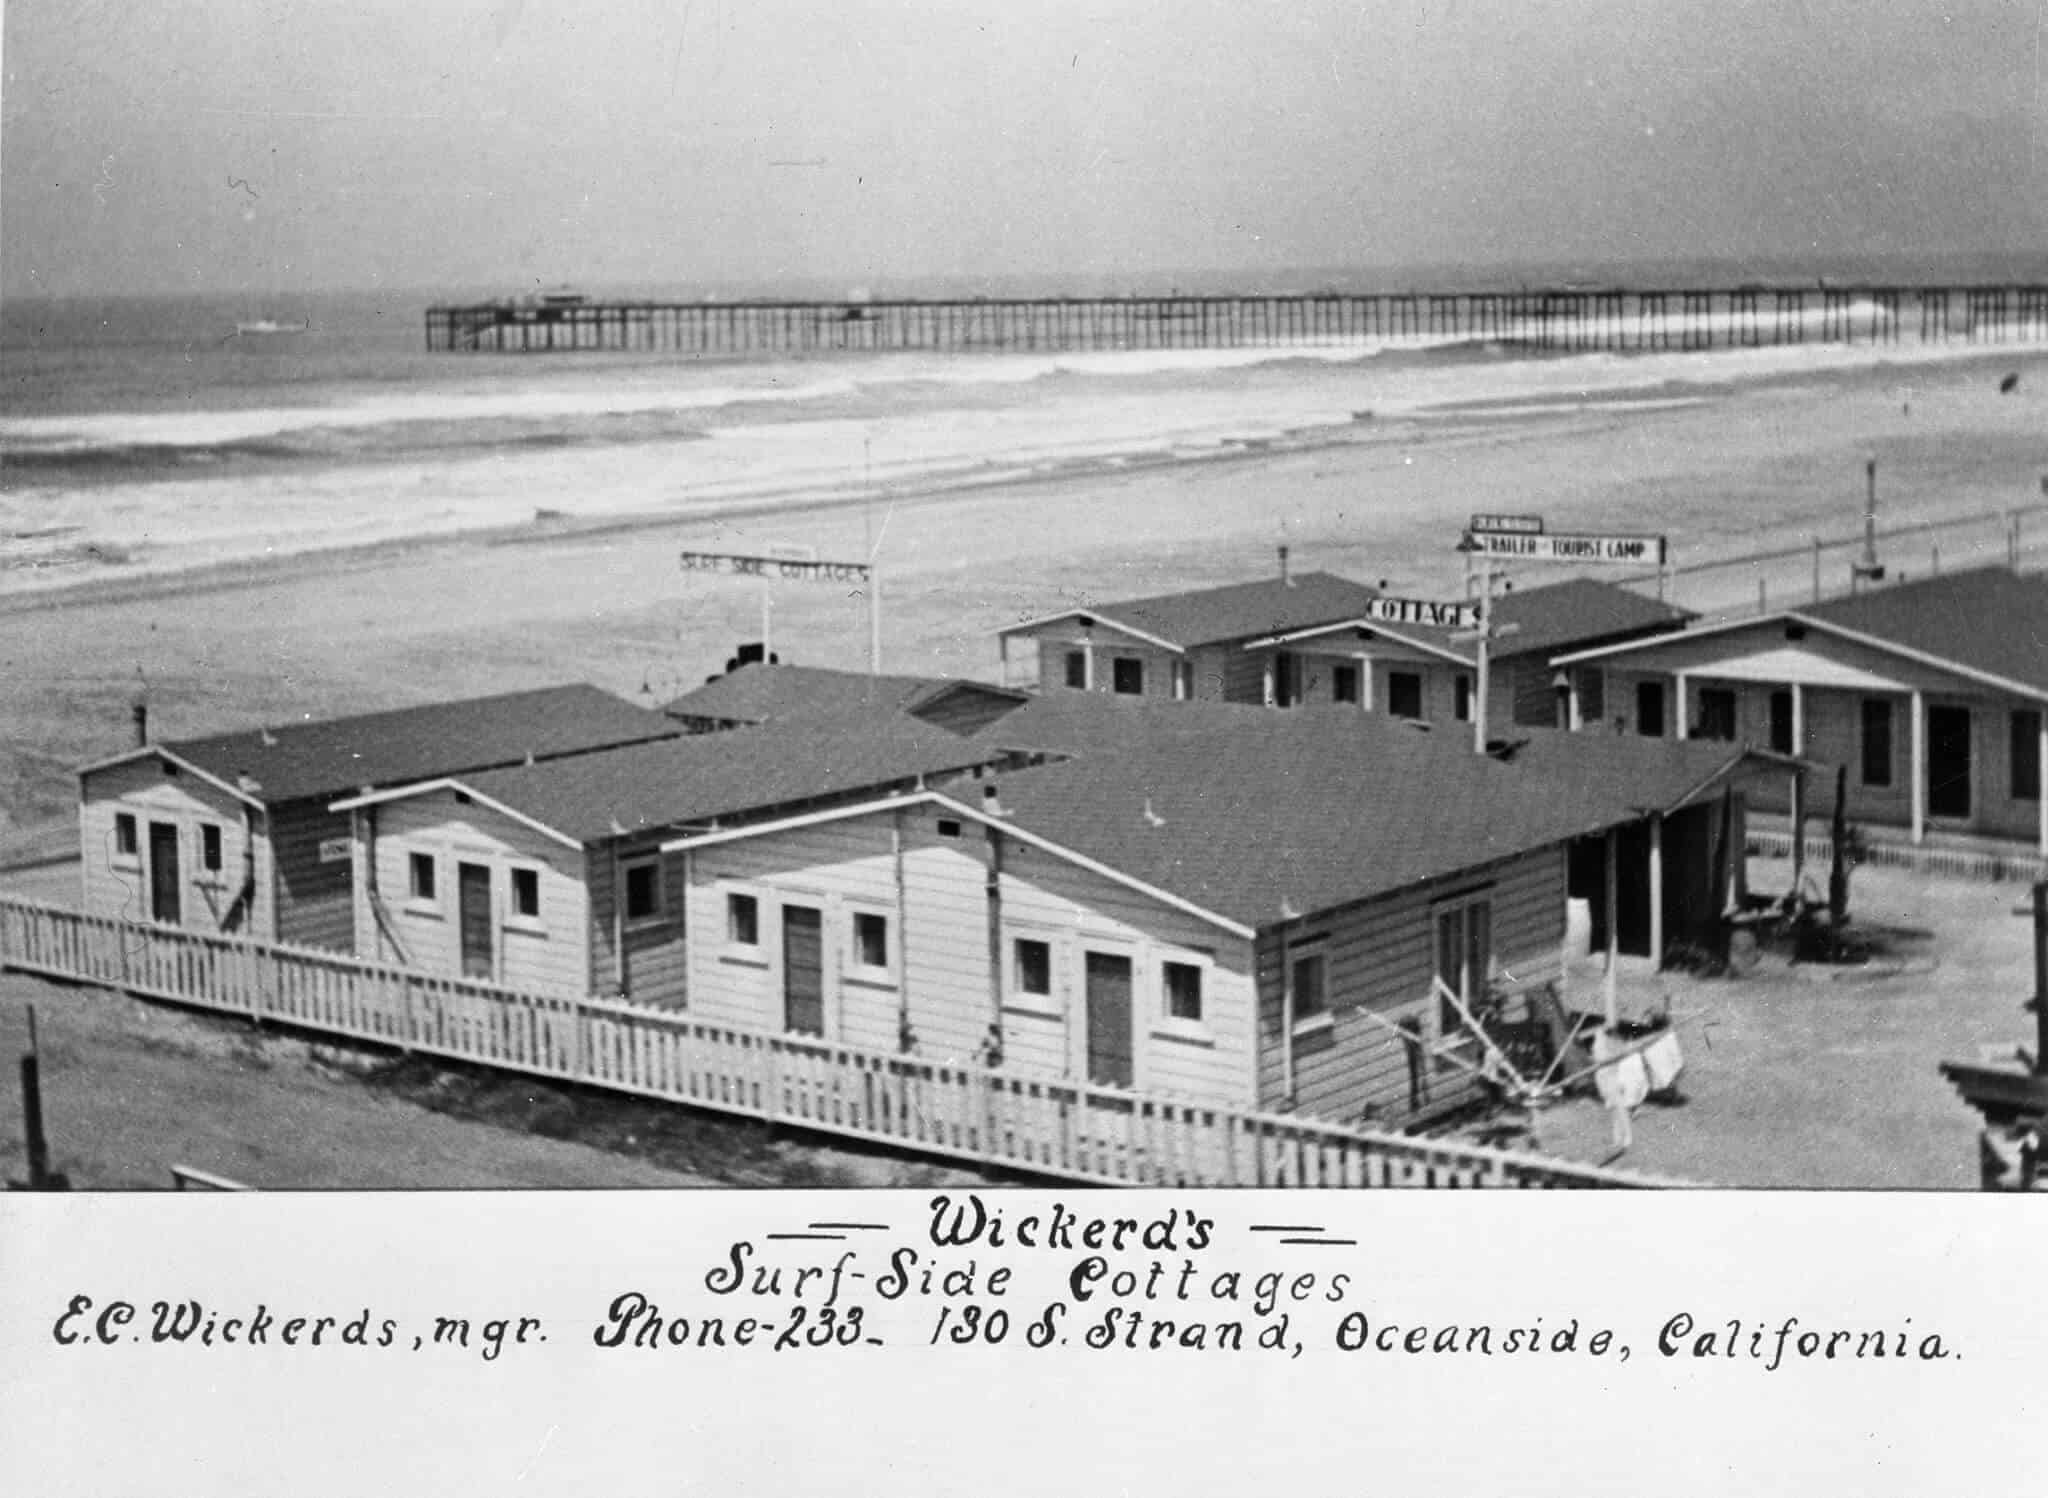 Wondrous History Of Tourism In Oceanside Visit Oceanside Download Free Architecture Designs Sospemadebymaigaardcom